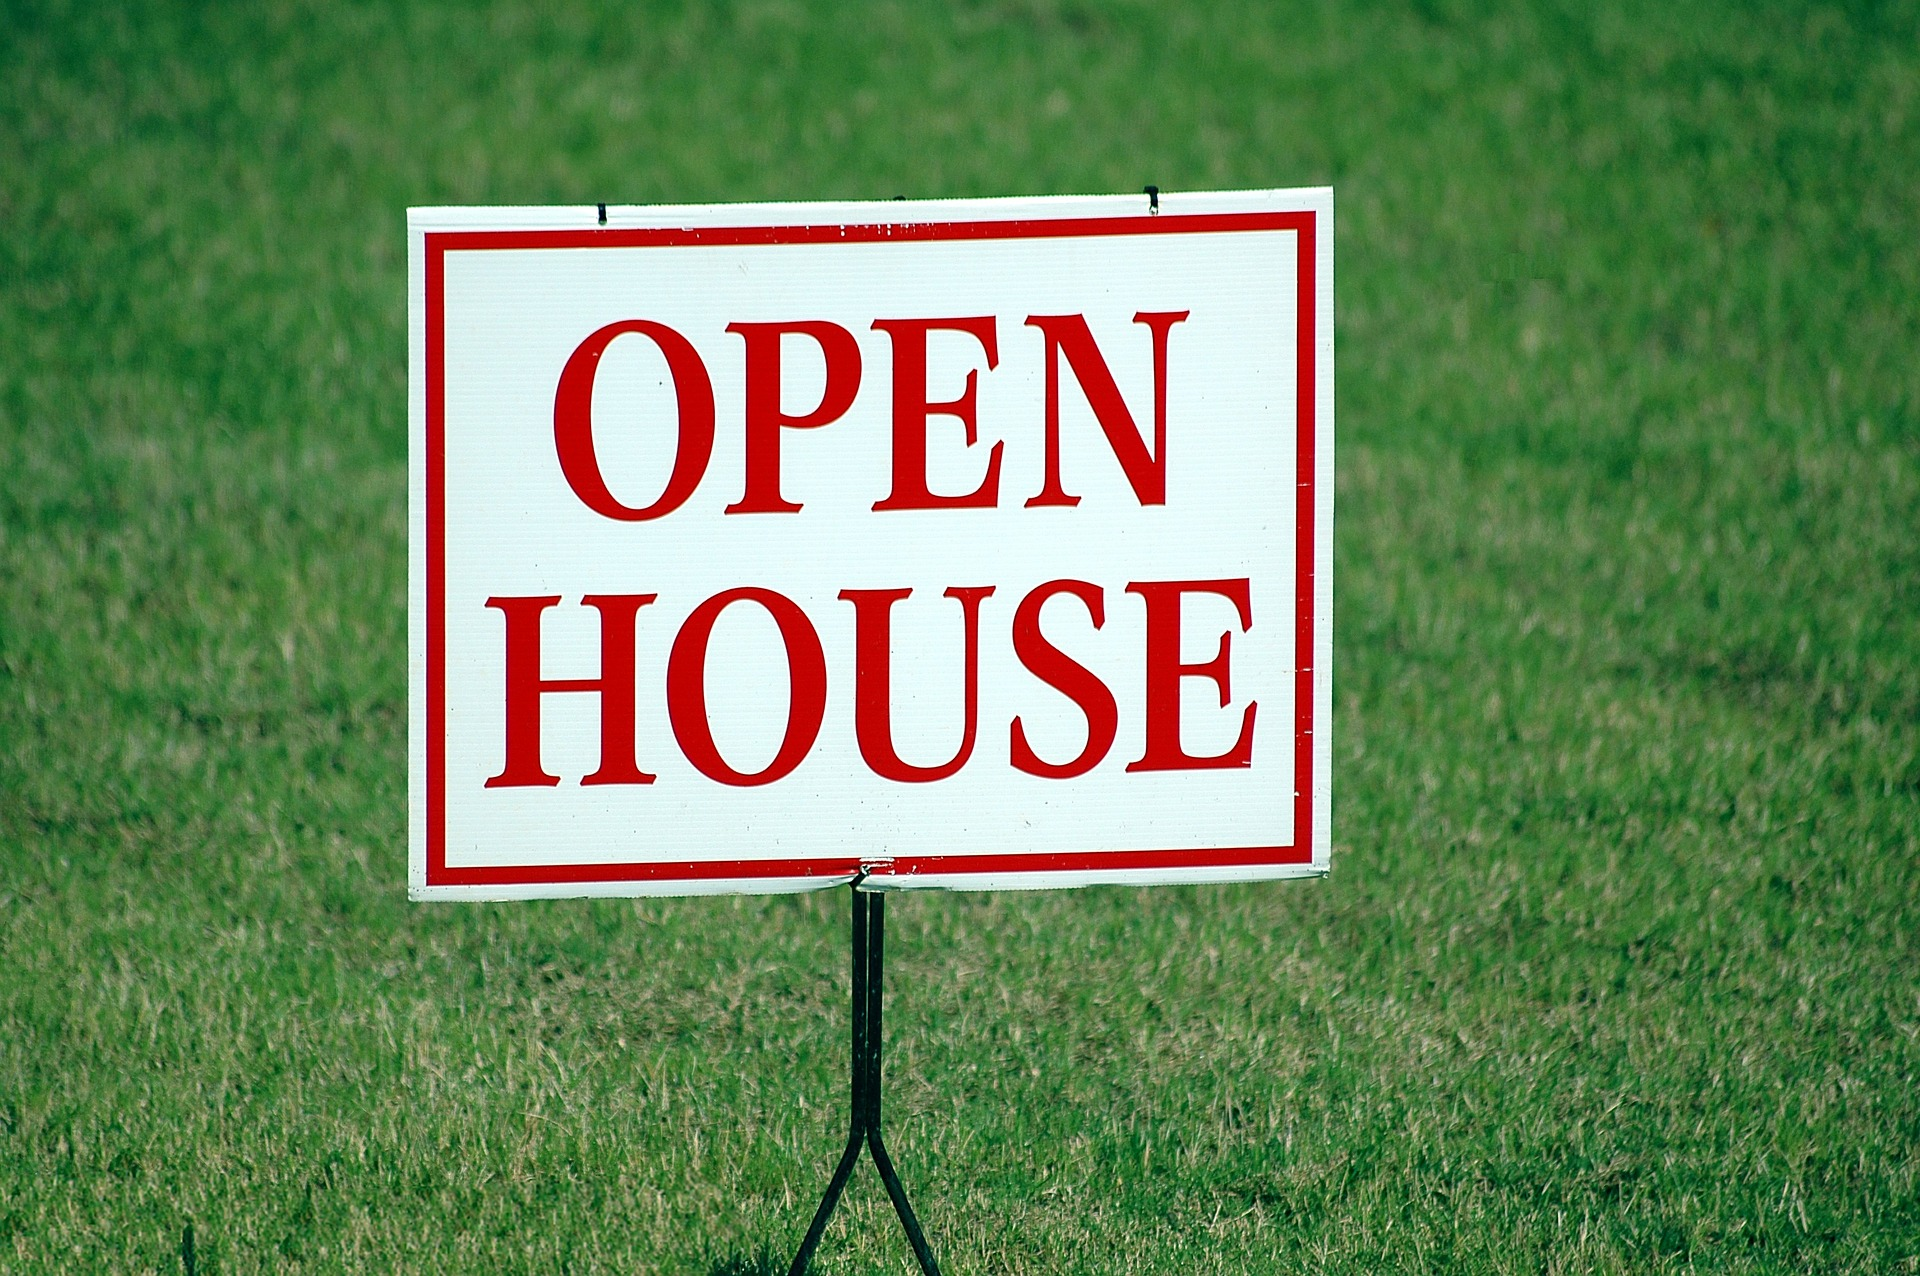 Guelph Real Estate - Open House Tips